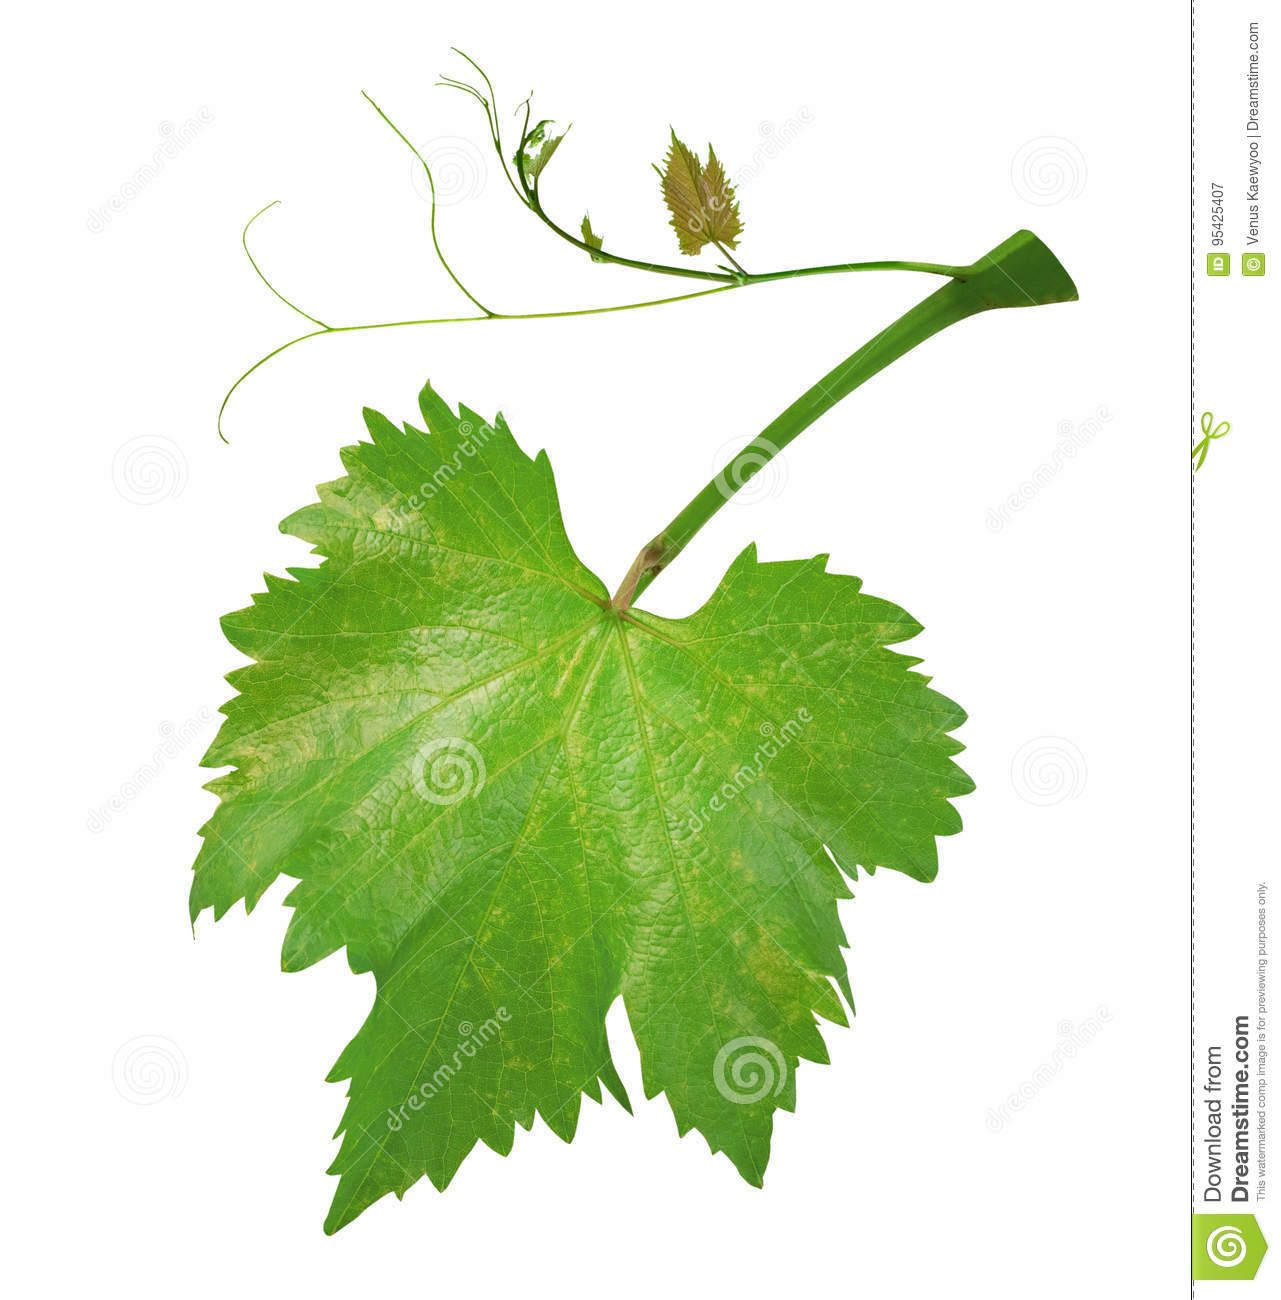 Fresh green grape leaves on branch with tendrils isolated on white background, path